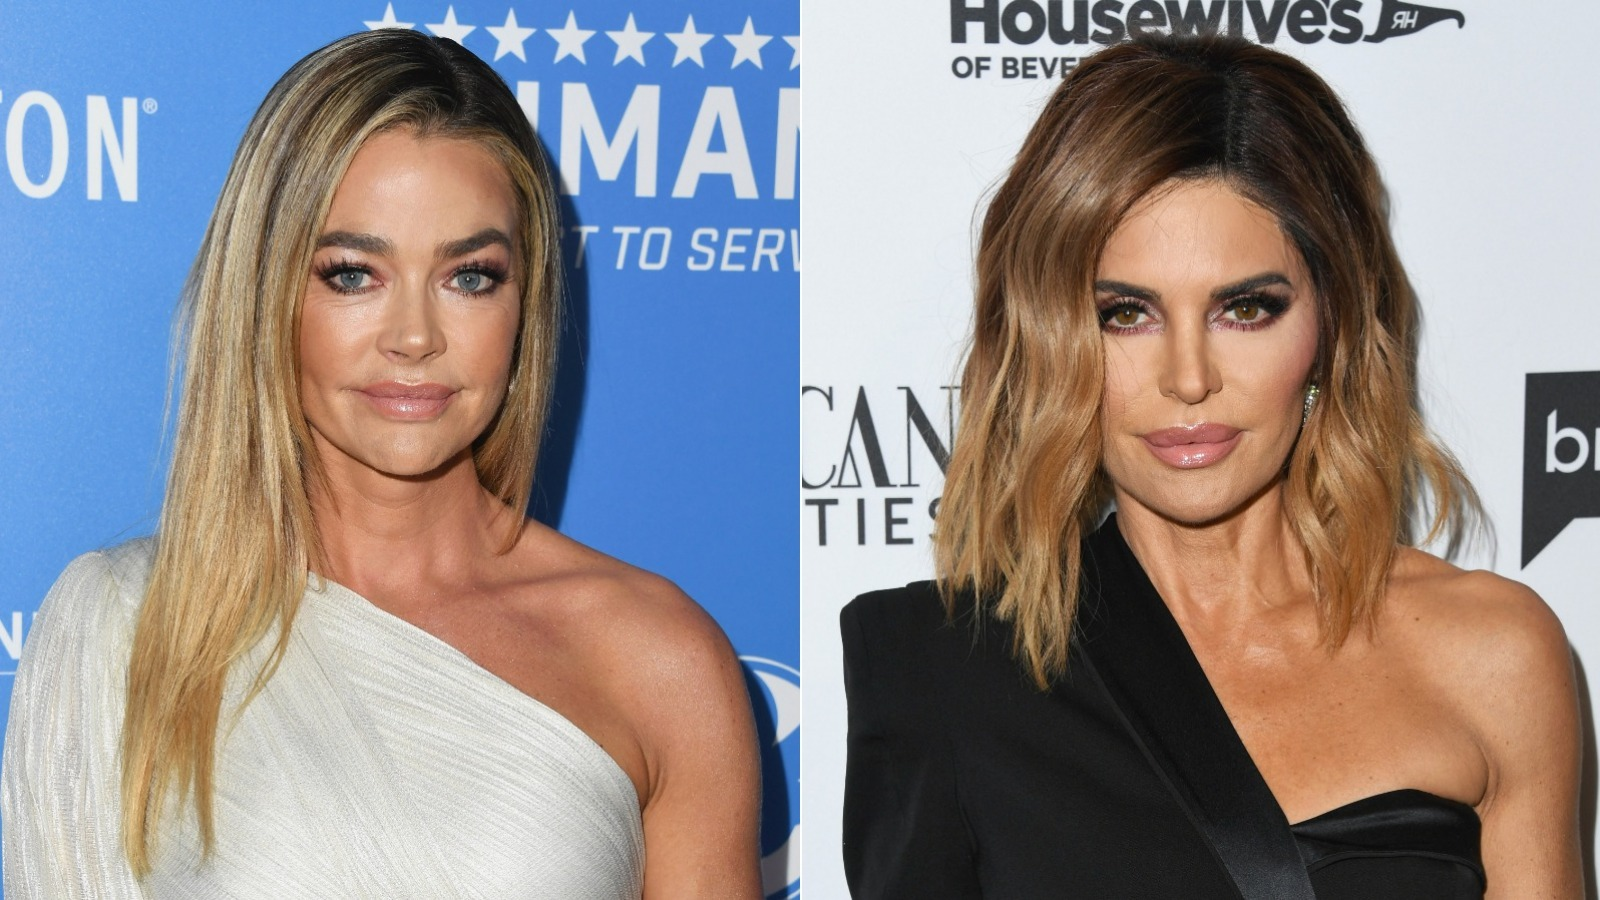 The unsaid truth of Denise Richards and Lisa Rinna's feud